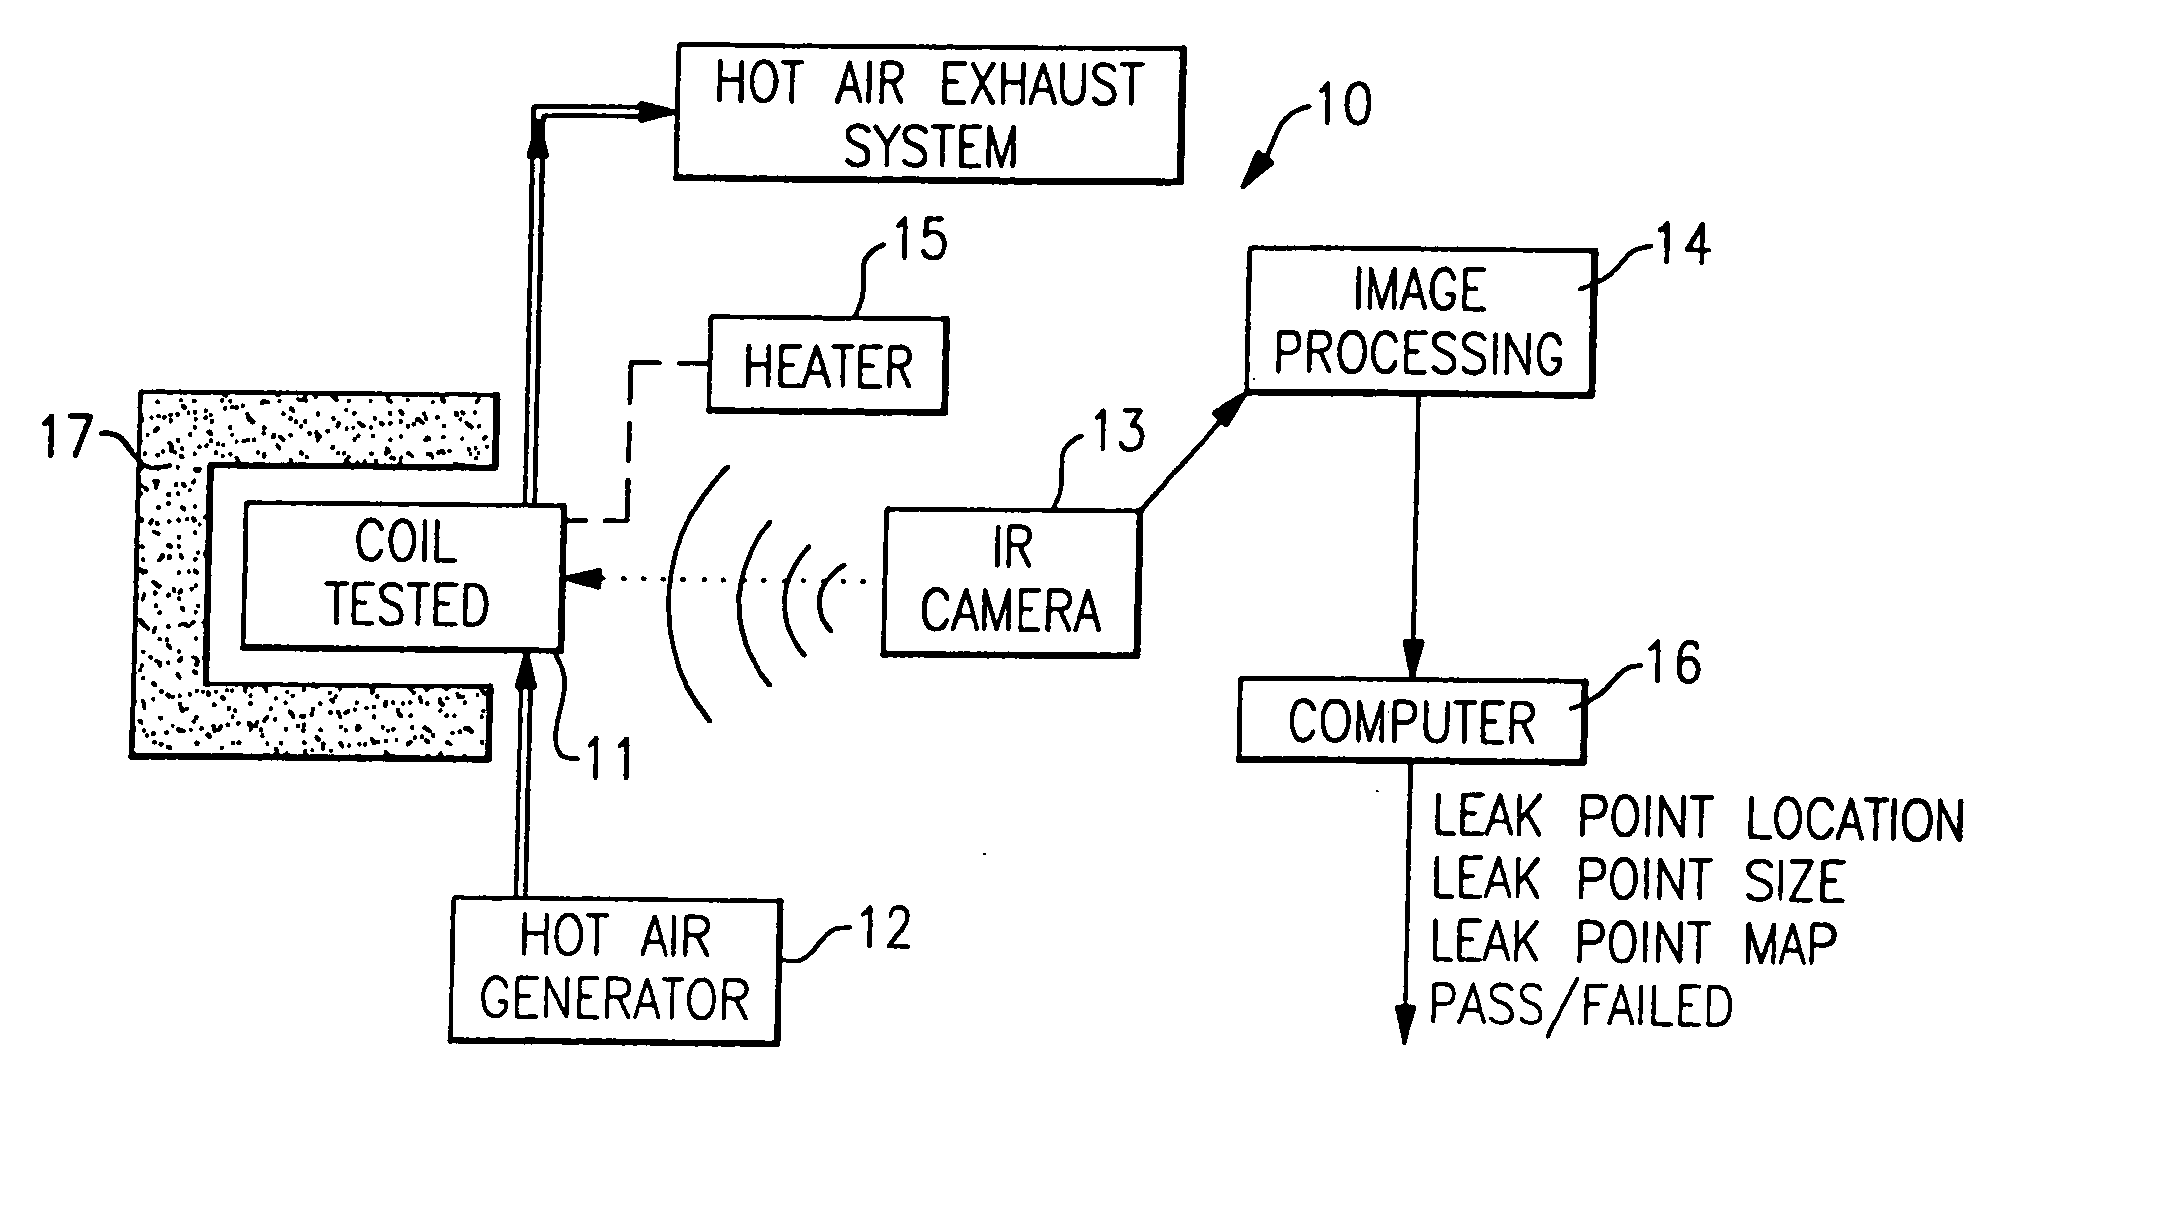 US20050126263A1 - Leak detection with thermal imaging